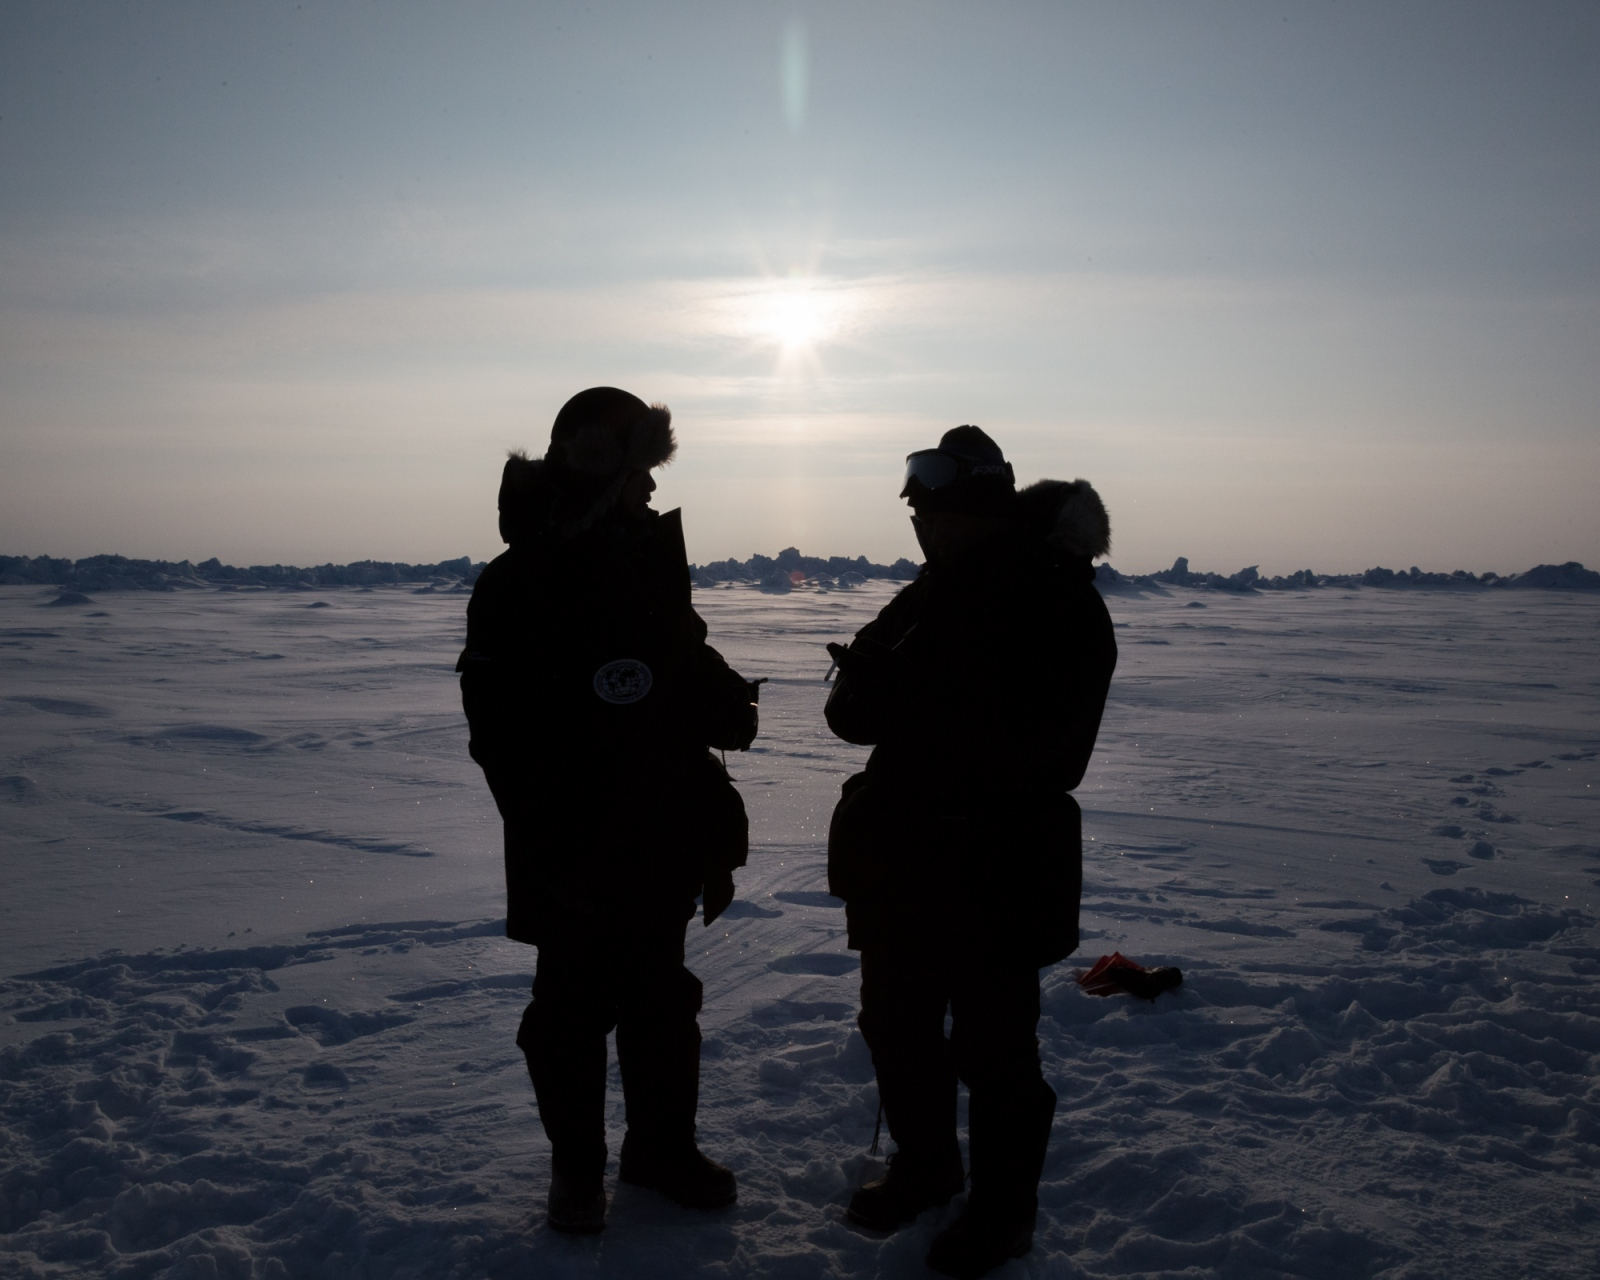 An expedition guide speaks with a client during an hour-long visit to the geographic North Pole, made by helicopter from the Russian Barneo Ice Camp. 2016.